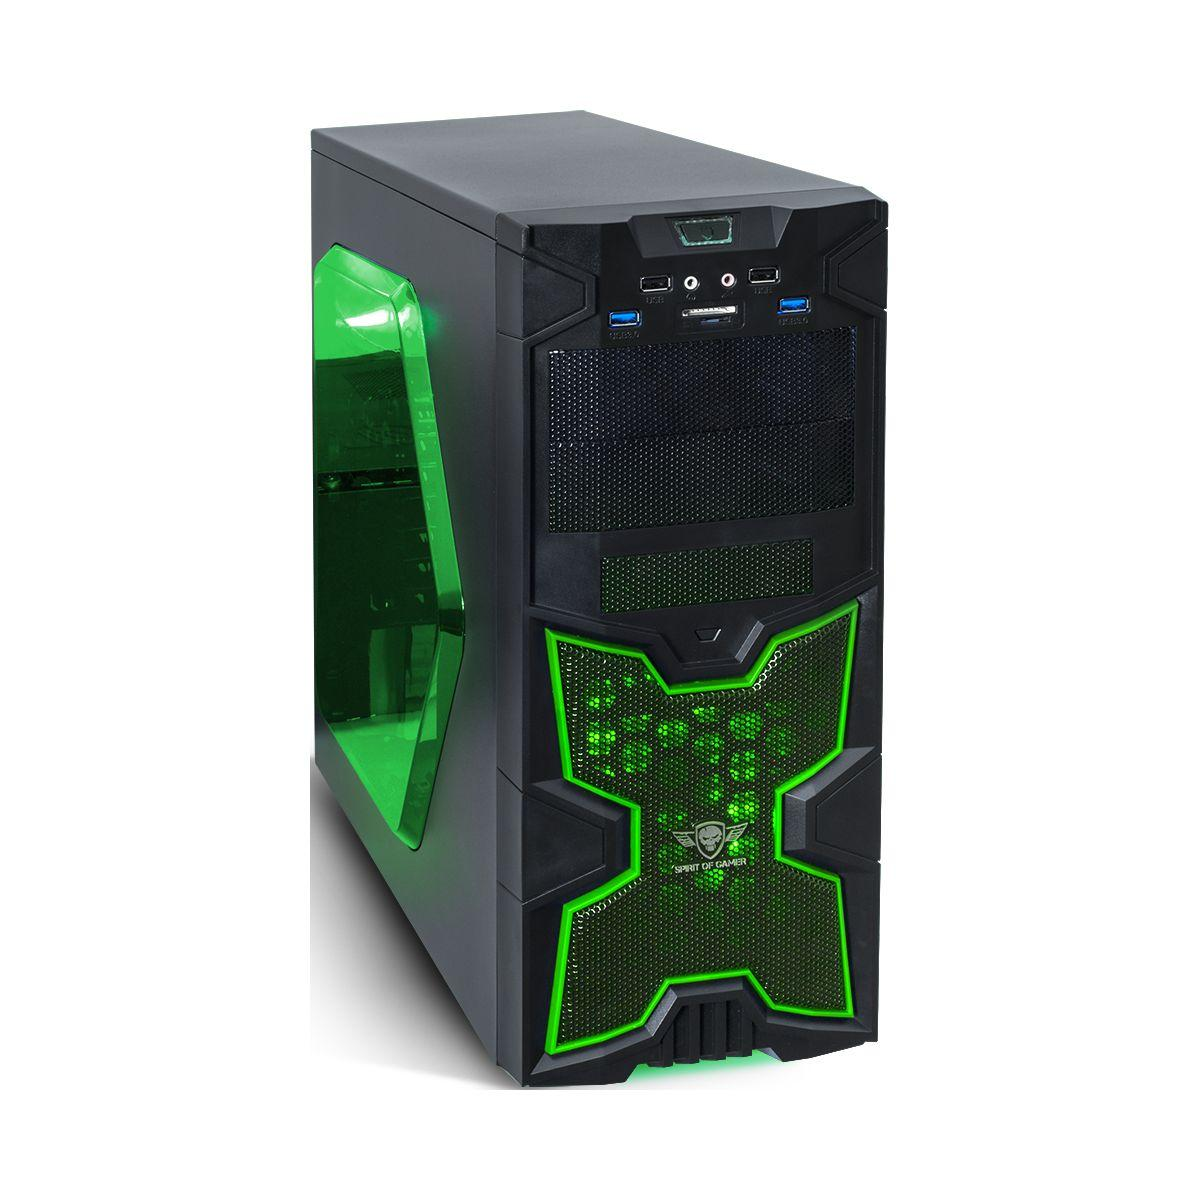 Boitier pc spirit of gamer x-fighters 41 green army - 2% de remise imm�diate avec le code : school2 (photo)